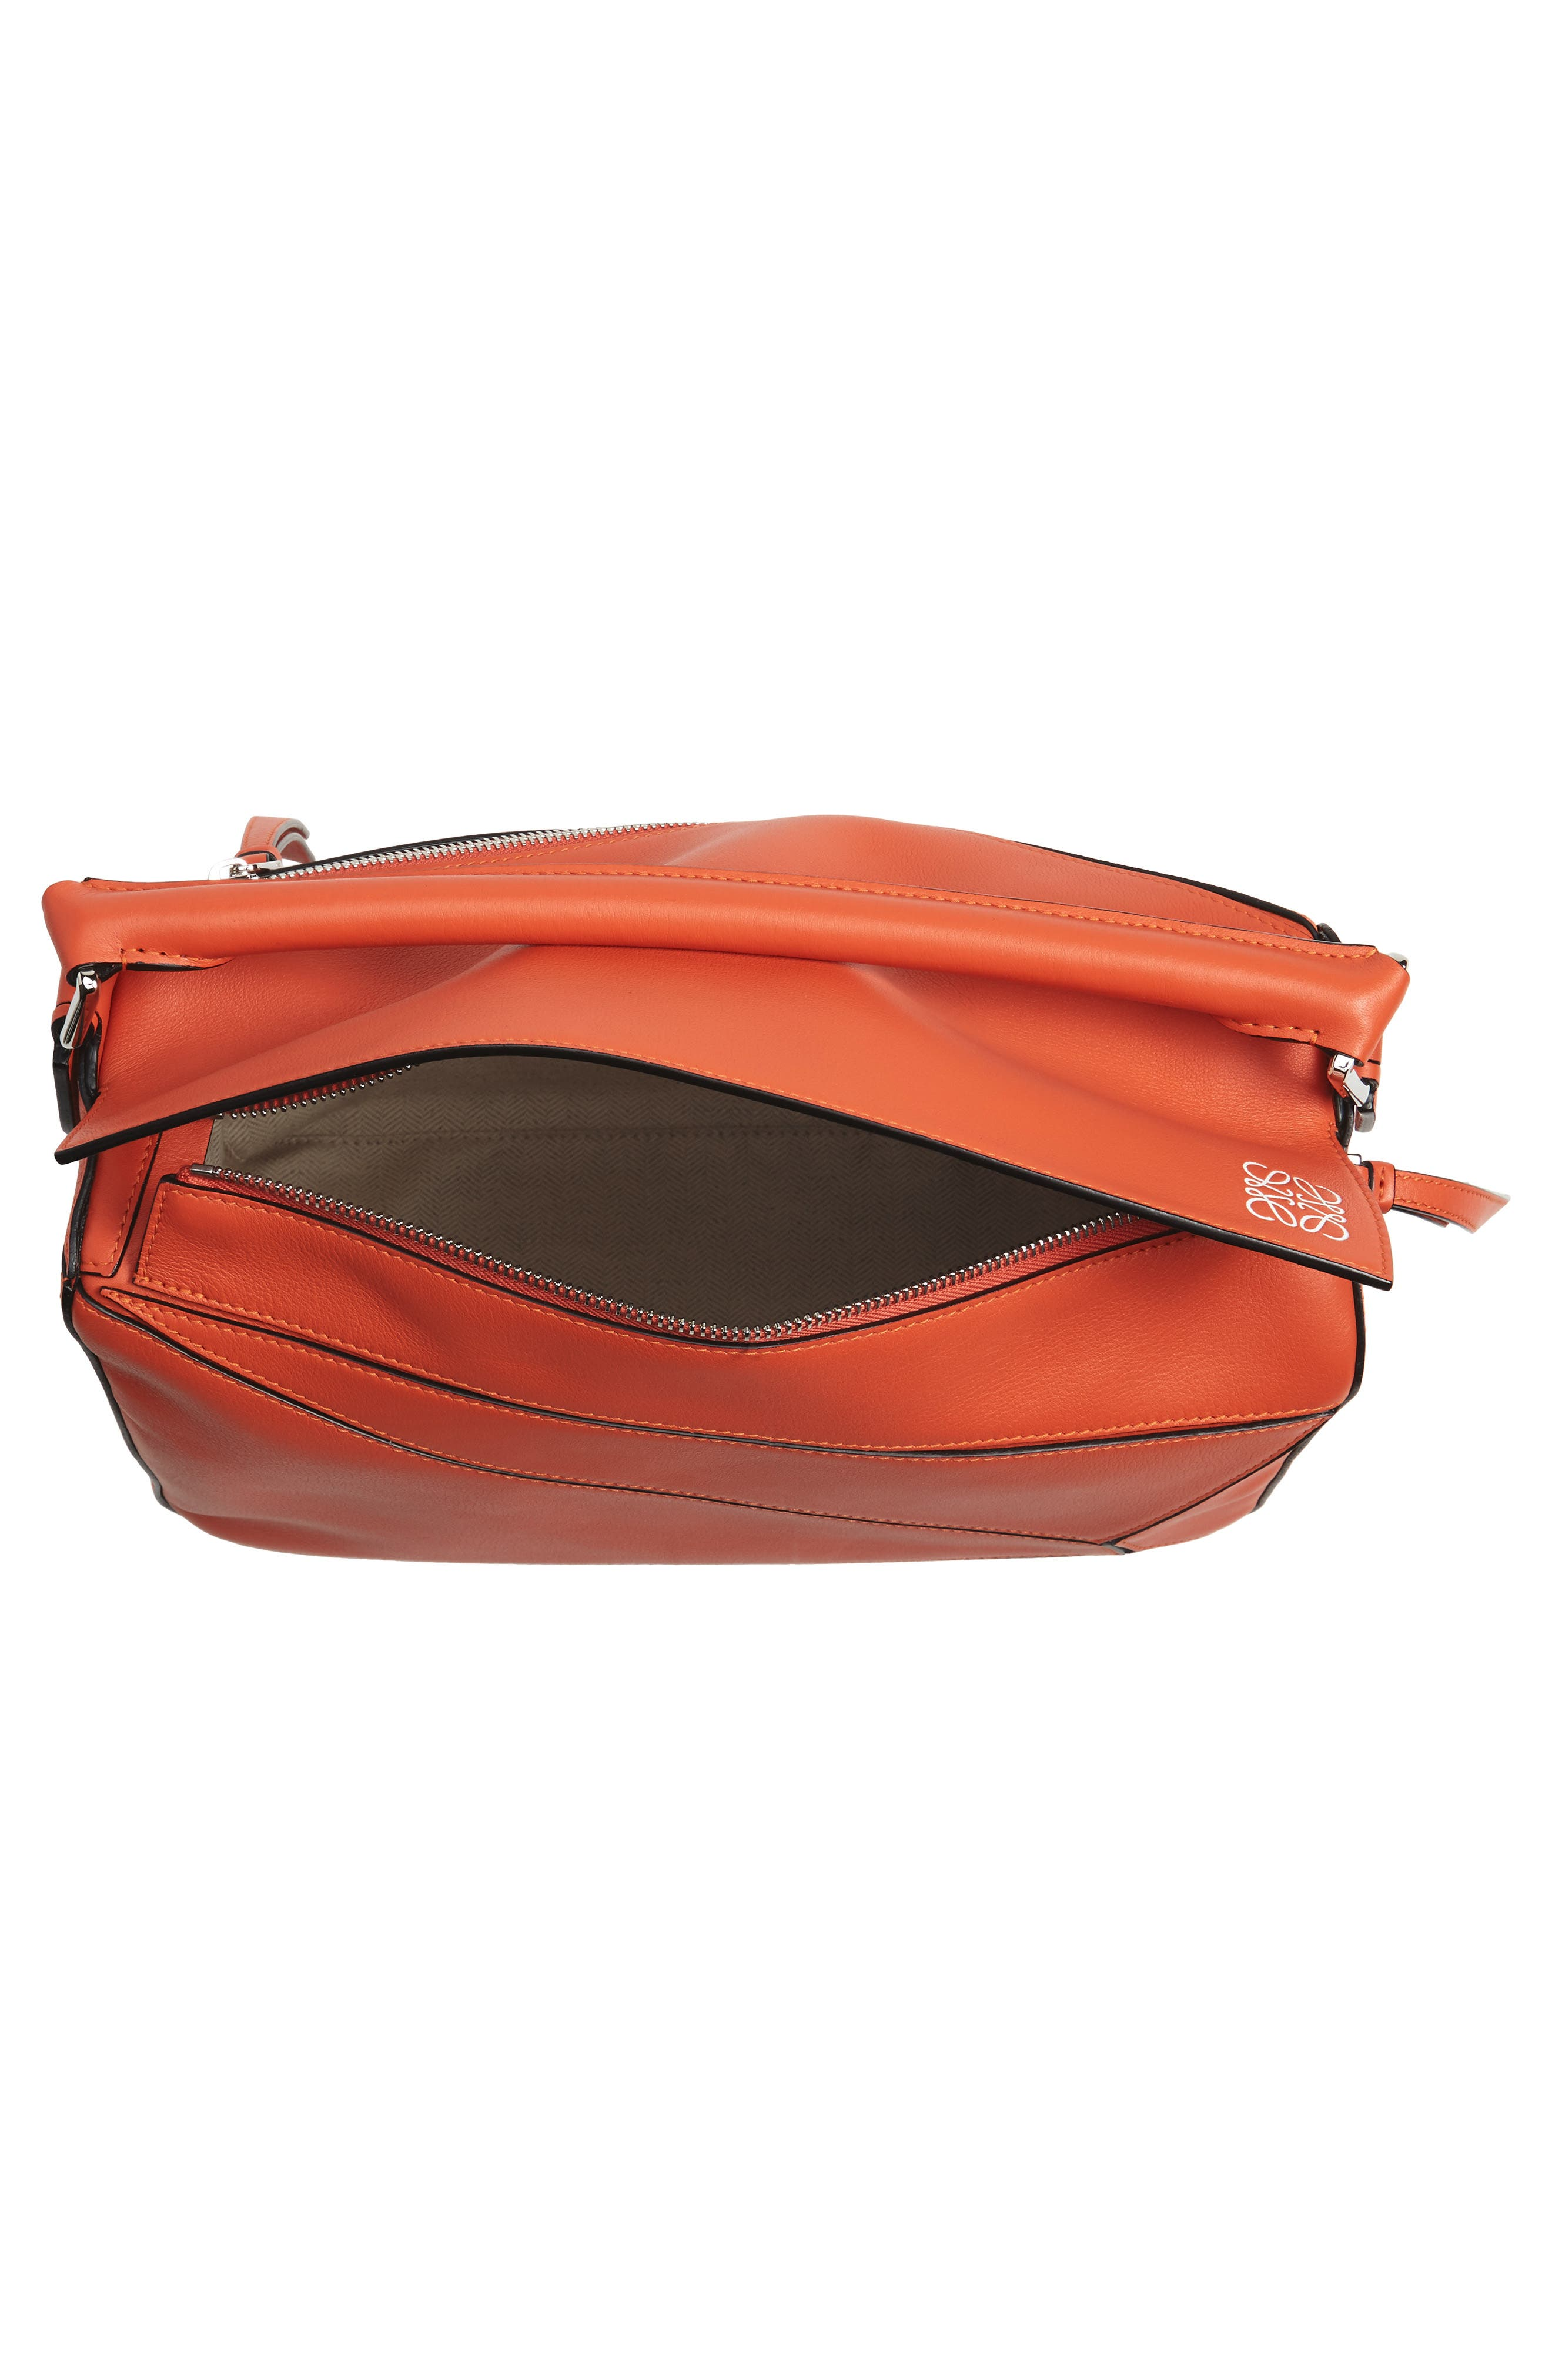 'Small Puzzle' Calfskin Leather Bag,                             Alternate thumbnail 33, color,